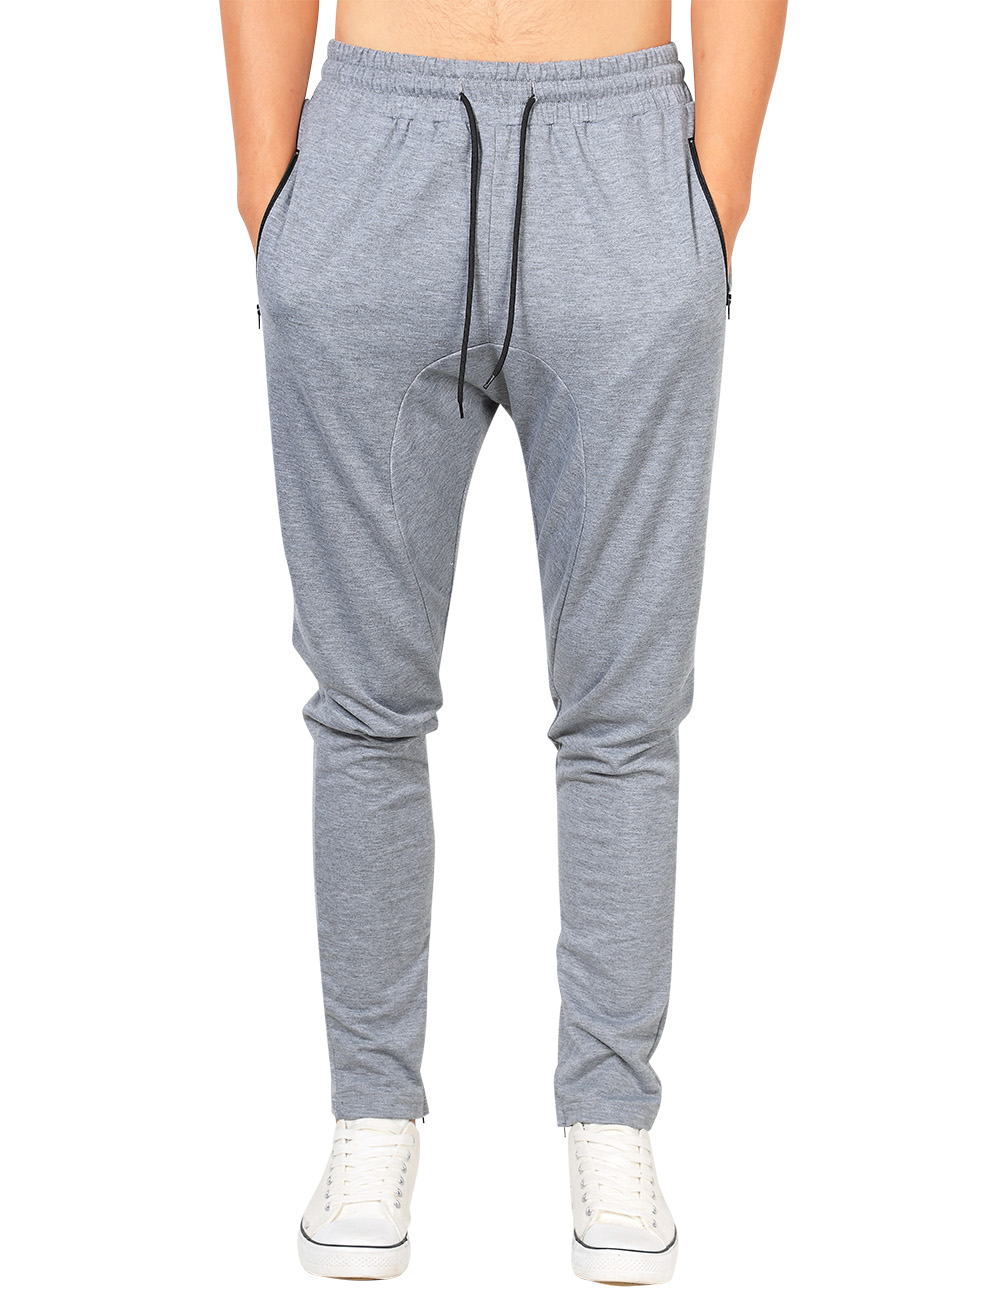 Yong Horse Men's Casual Jogger Pants Fitness Workout Gym Running Sweatpants Light Grey_M